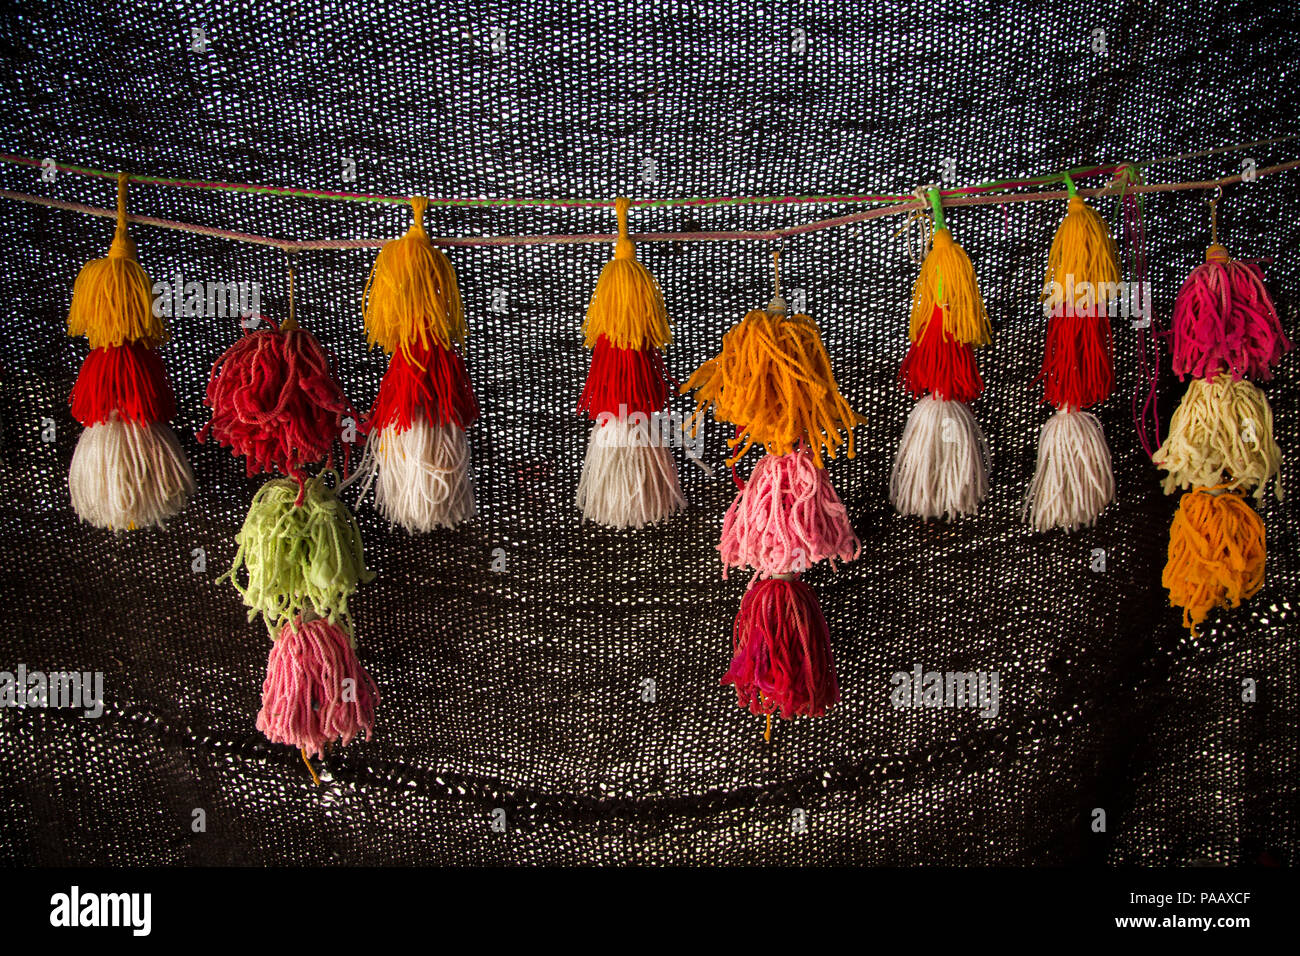 Decoration of Qashqai nomad people tent , Iran - Stock Image